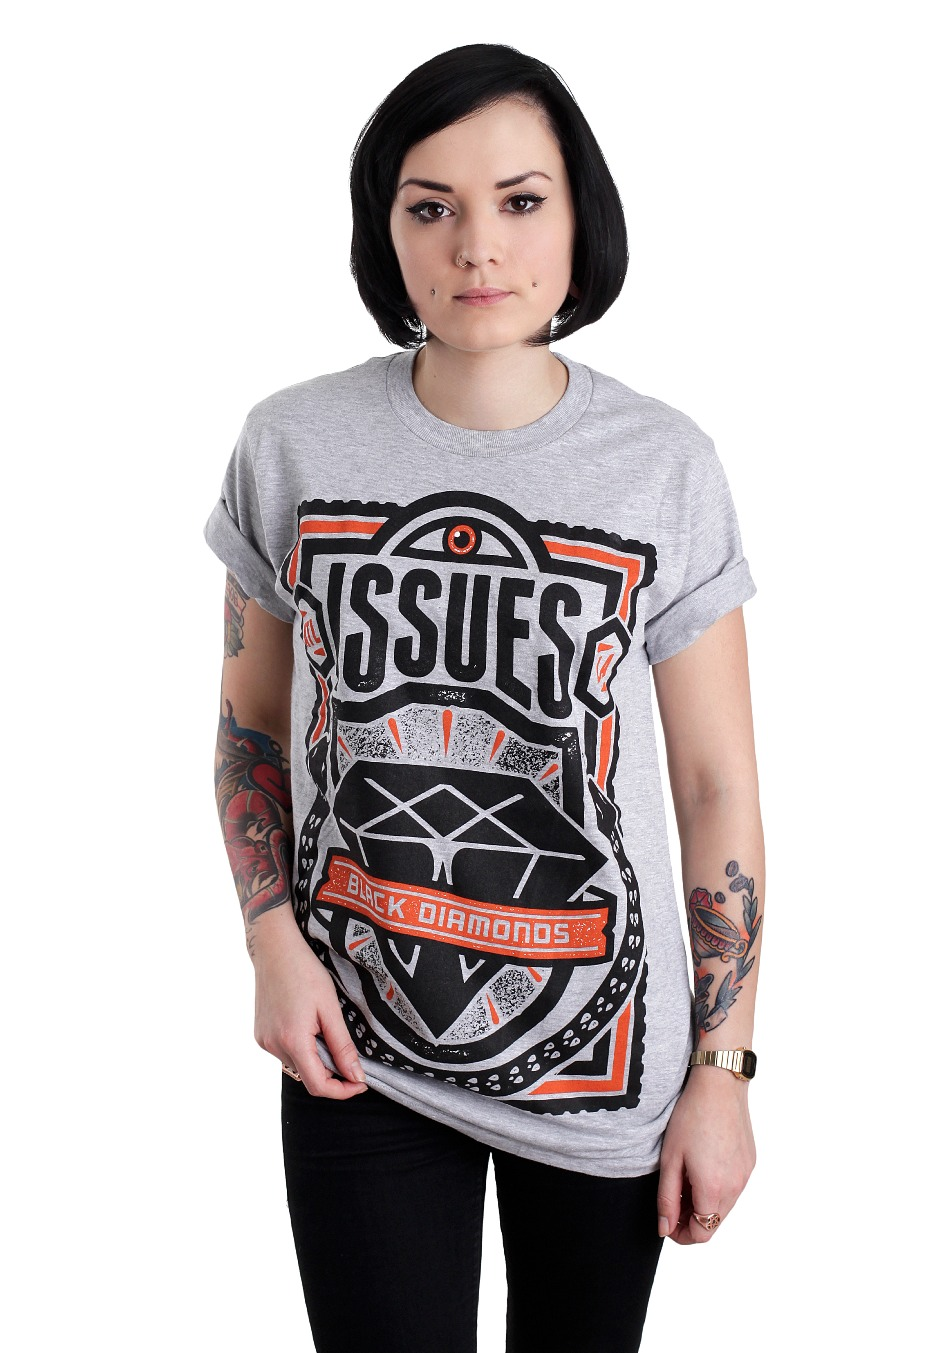 Issues Black Diamonds Heather Grey T Shirt Official